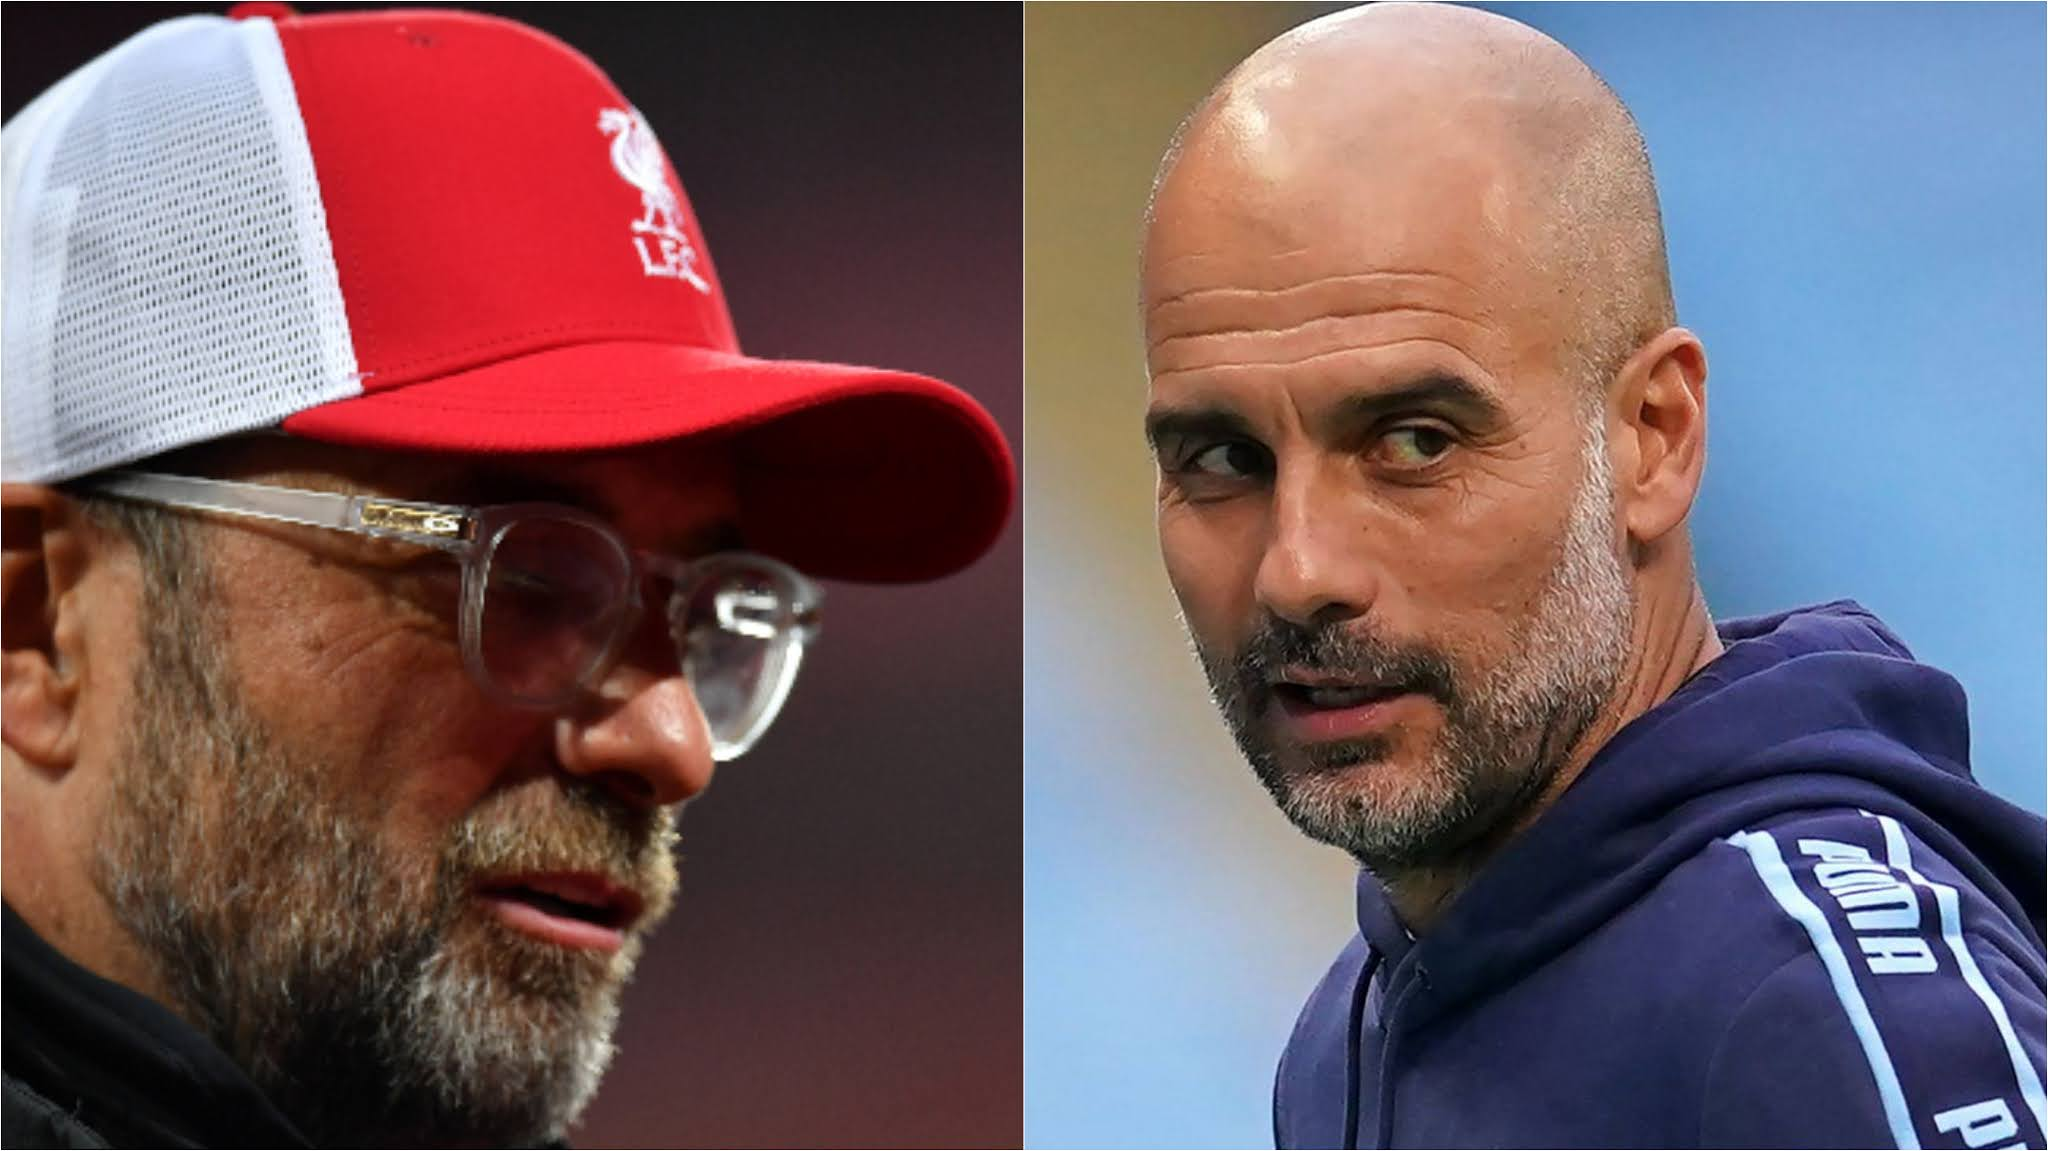 Manchester City vs. Liverpool, Premier League, Sunday Nov 8, 2020.